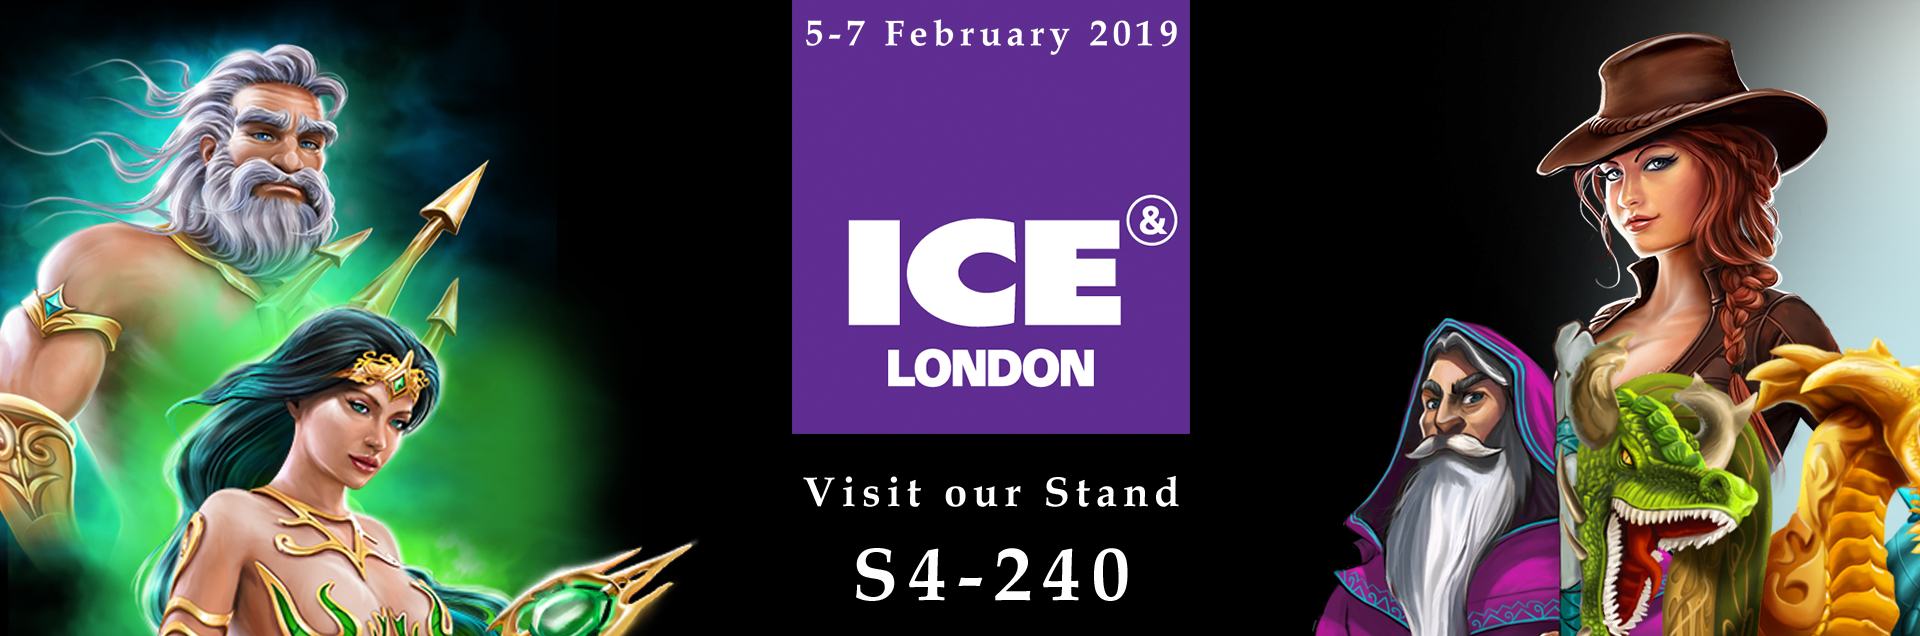 ICE2019 Header Image Homepage